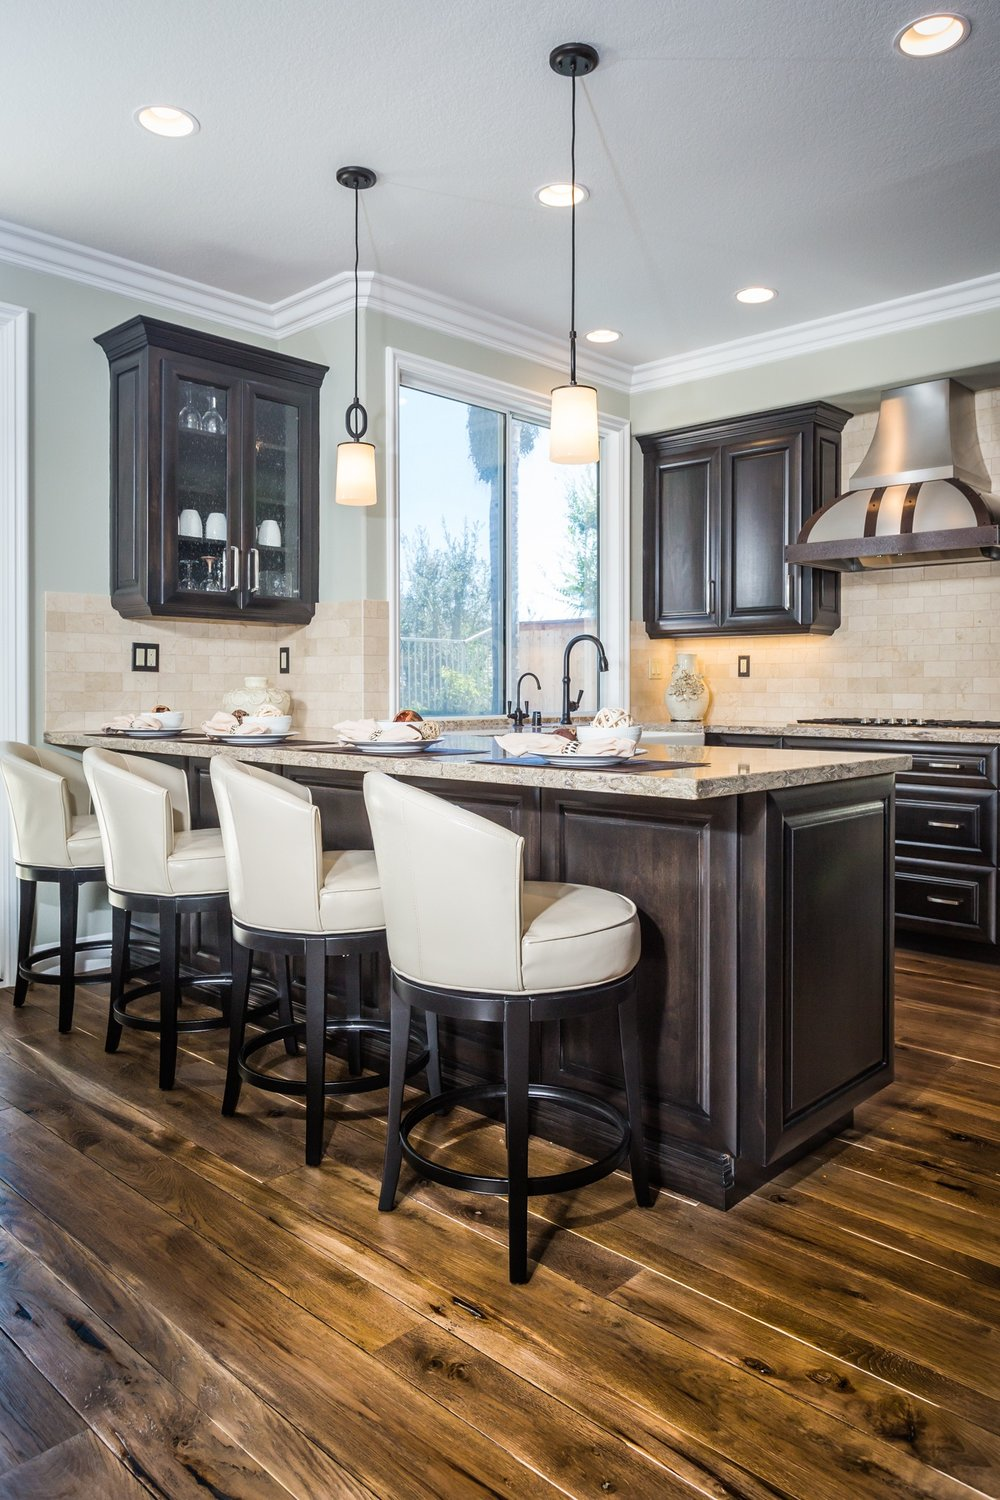 BUILD - New Construction - Residential & CommercialDesign and PlanningConstruction DrawingsSurface Materials SelectionsLighting Design & SelectionHardware Selection for all Cabinetry & DoorsNew Communities - Model Home Merchandising